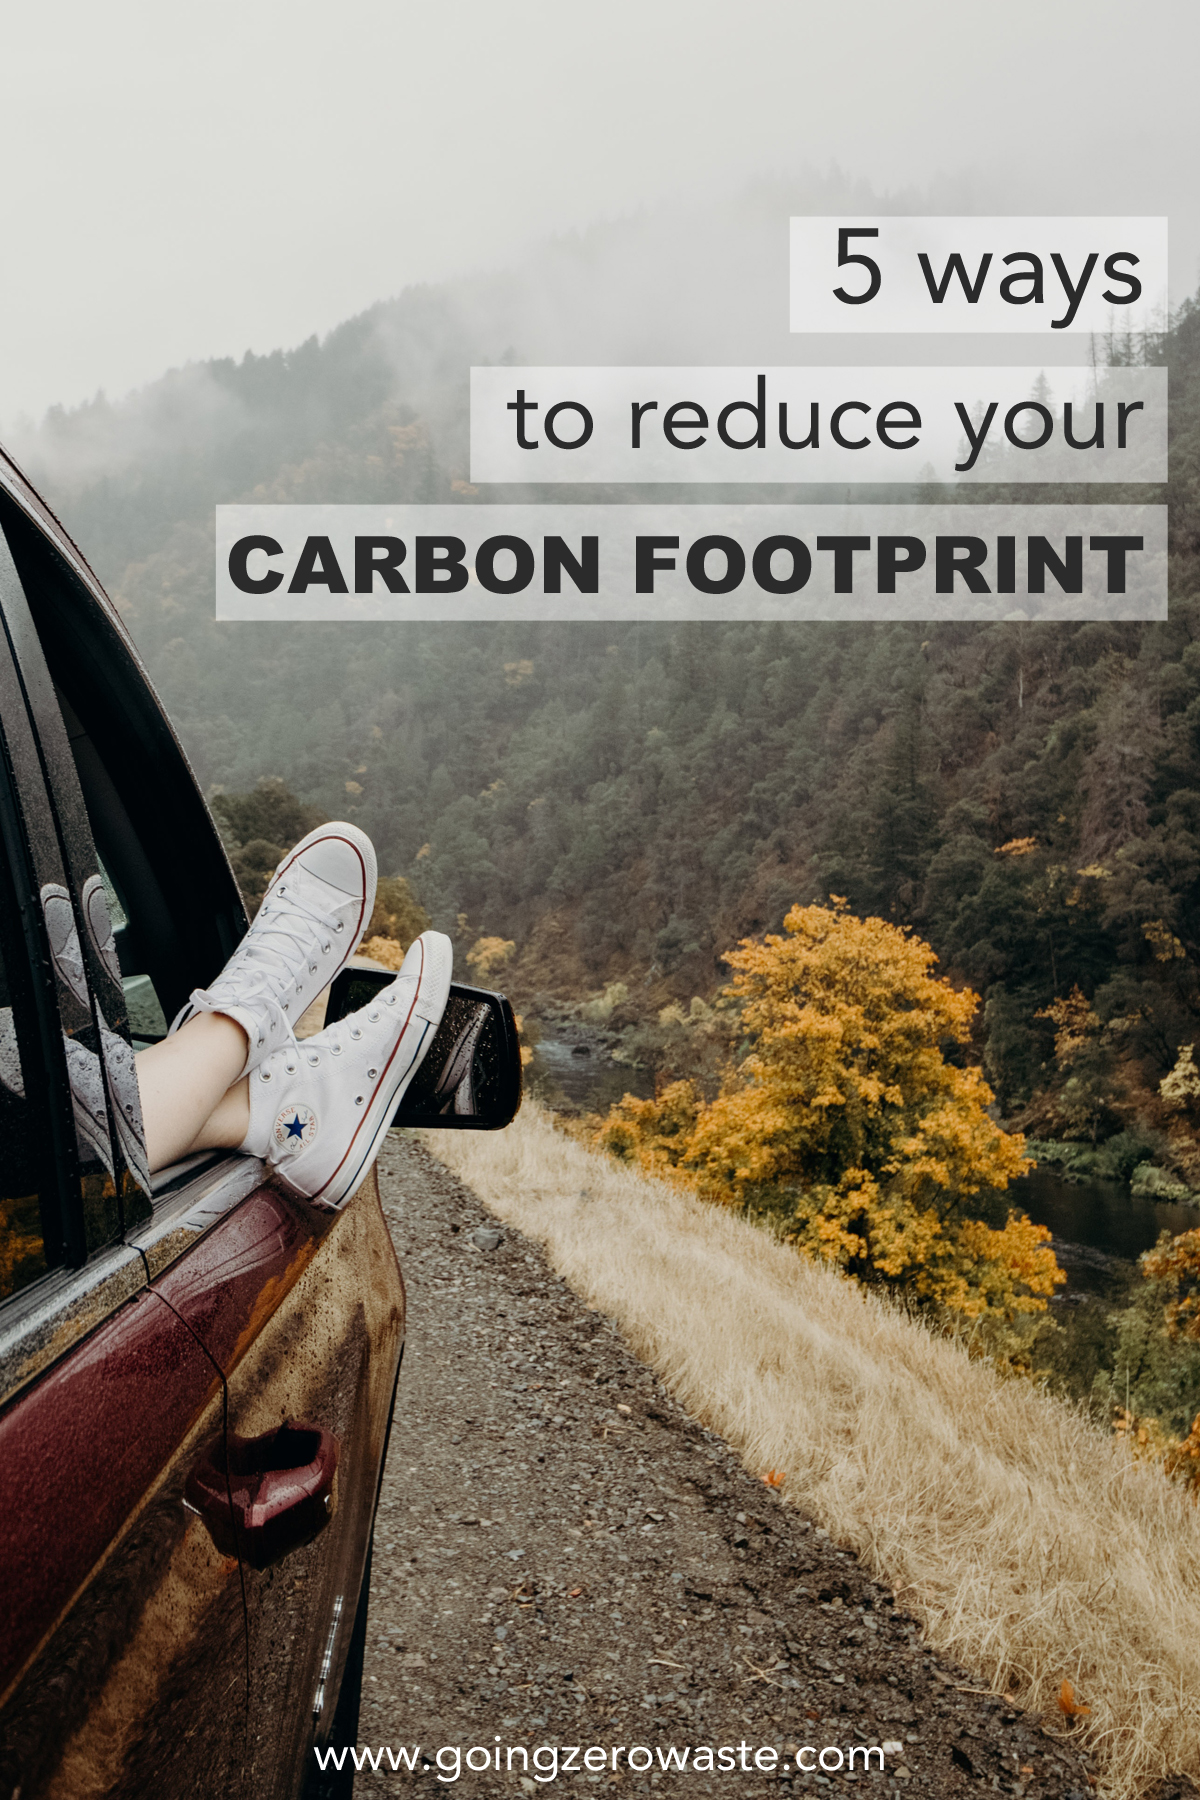 5 Ways to Reduce Your Carbon Footprint from www.goingzerowaste.com #carbonfootprint #ecofriendly #gogreen #sustainability #zerowaste